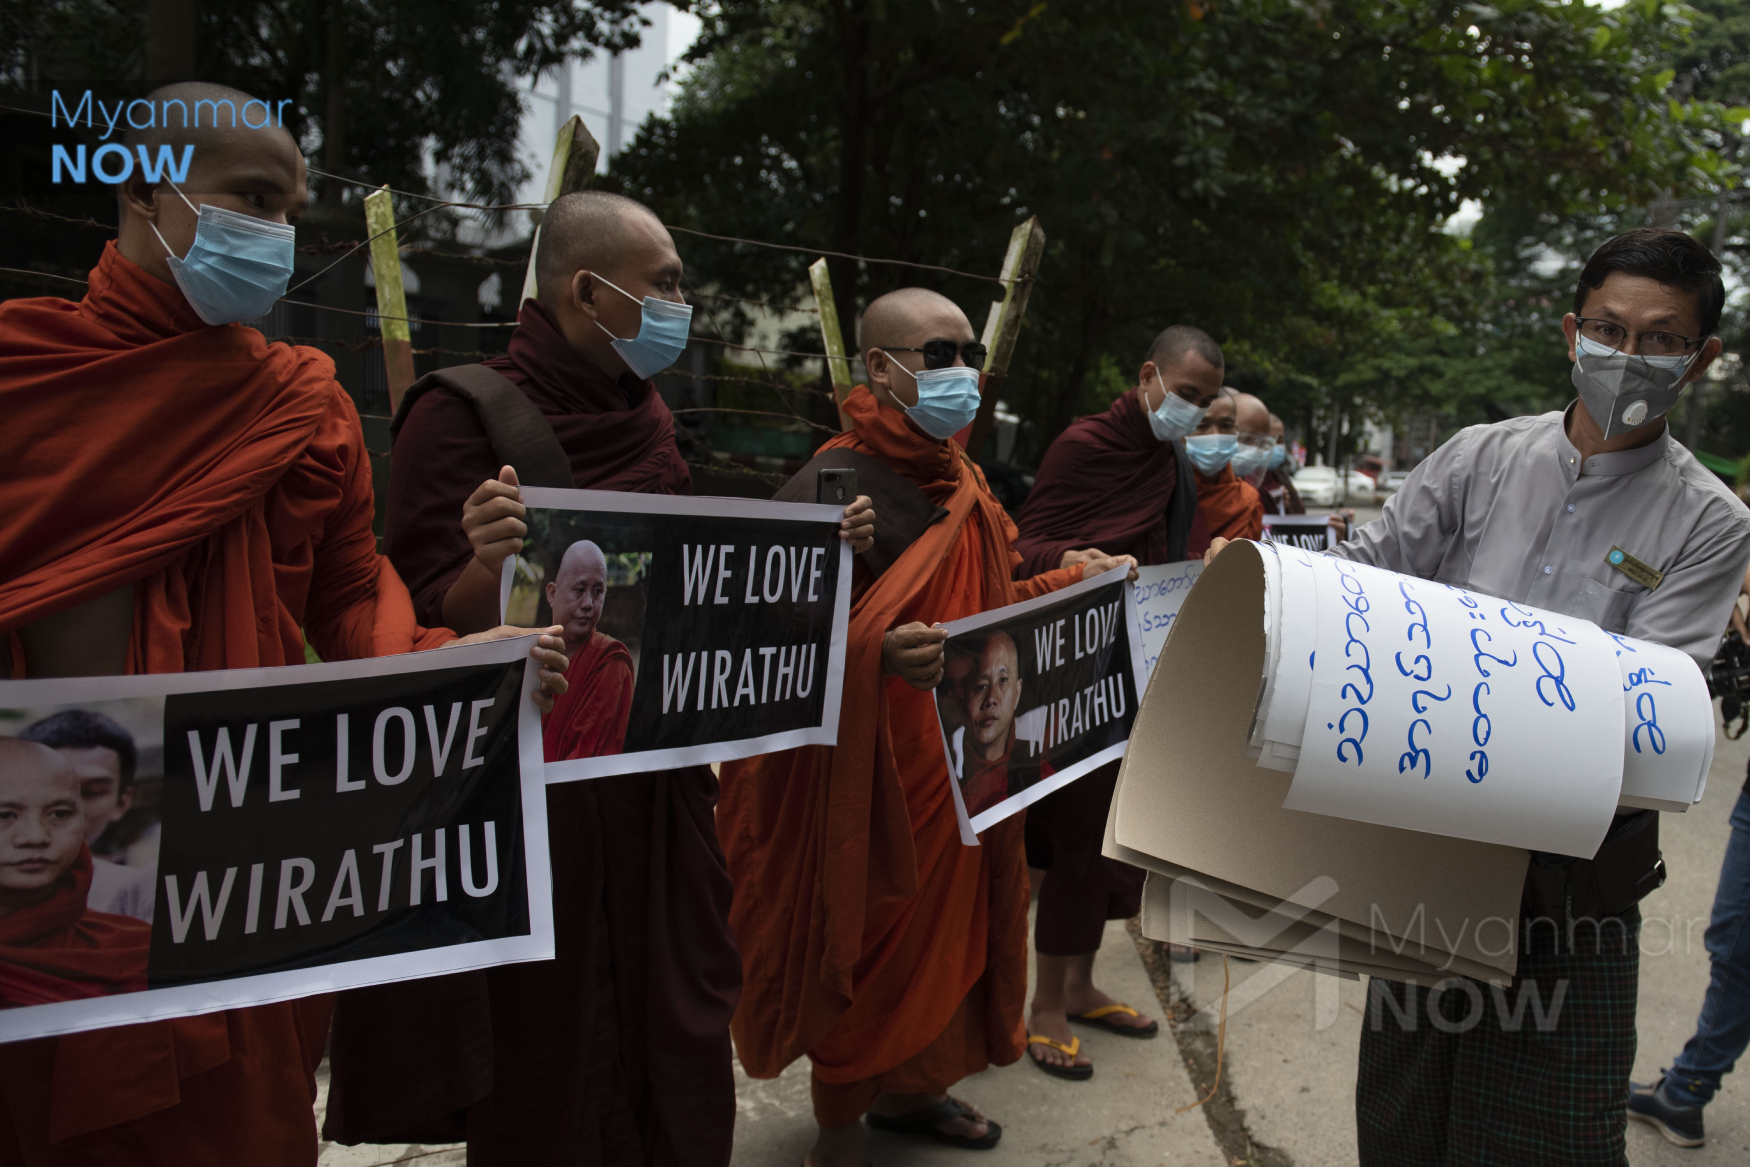 We Love Wirathu' - supporters gather outside court as notorious monk makes  first appearance via video link | Myanmar NOW